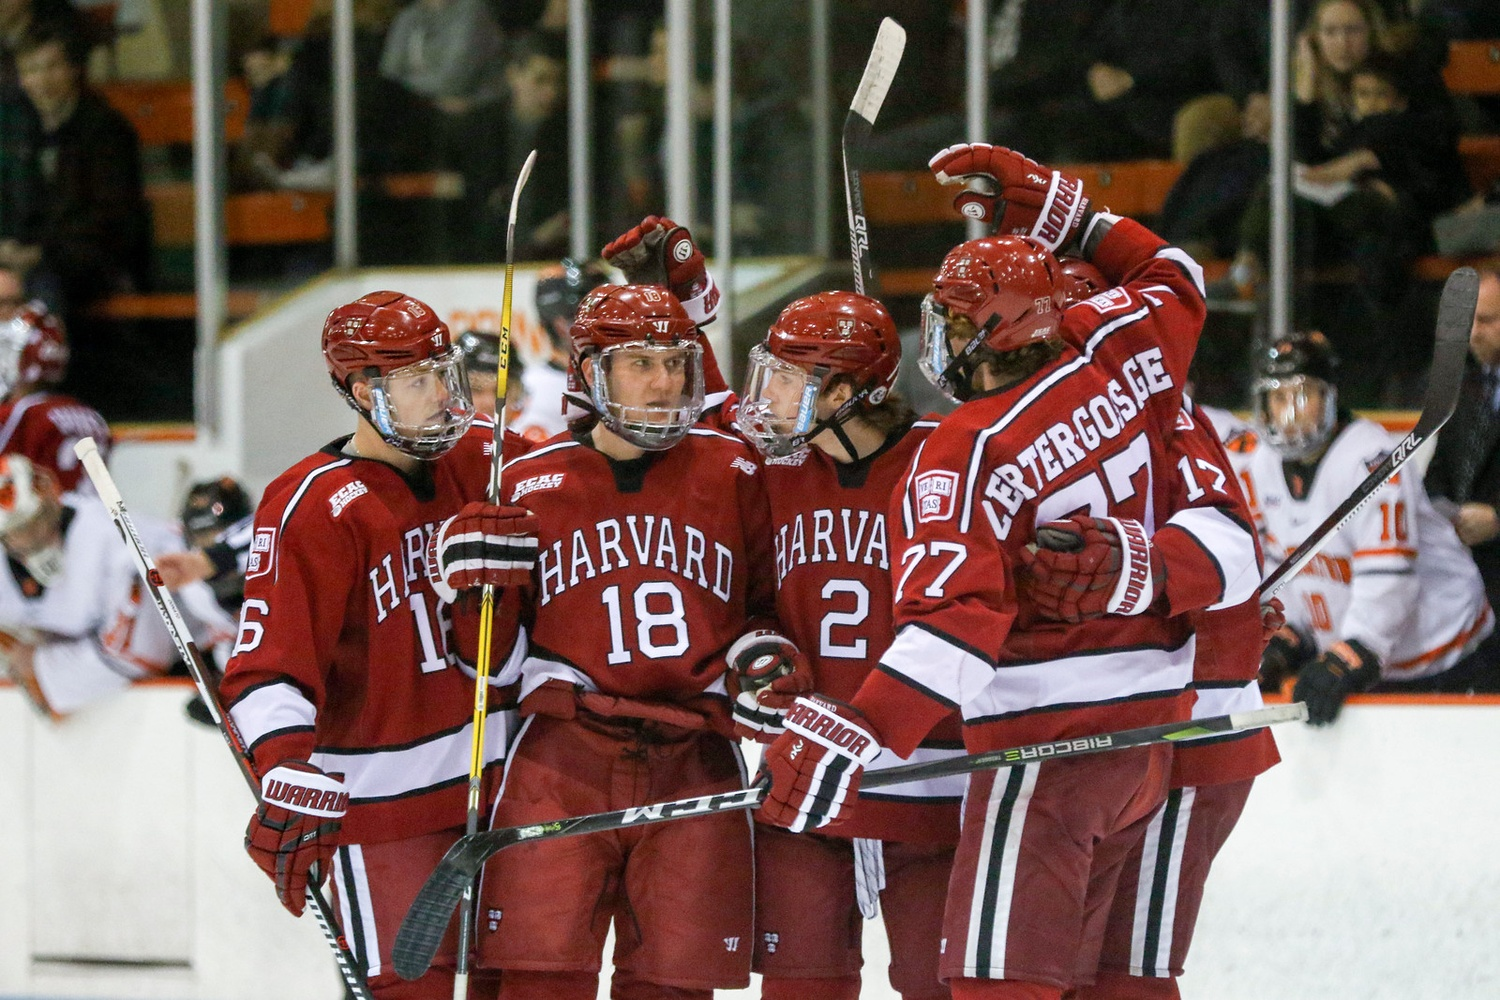 The top power play unit celebrates after freshman Reilly Walsh's one-time snipe from the right circle. Walsh kicked off the scoring for his team, who executed again on the man advantage later in the period.